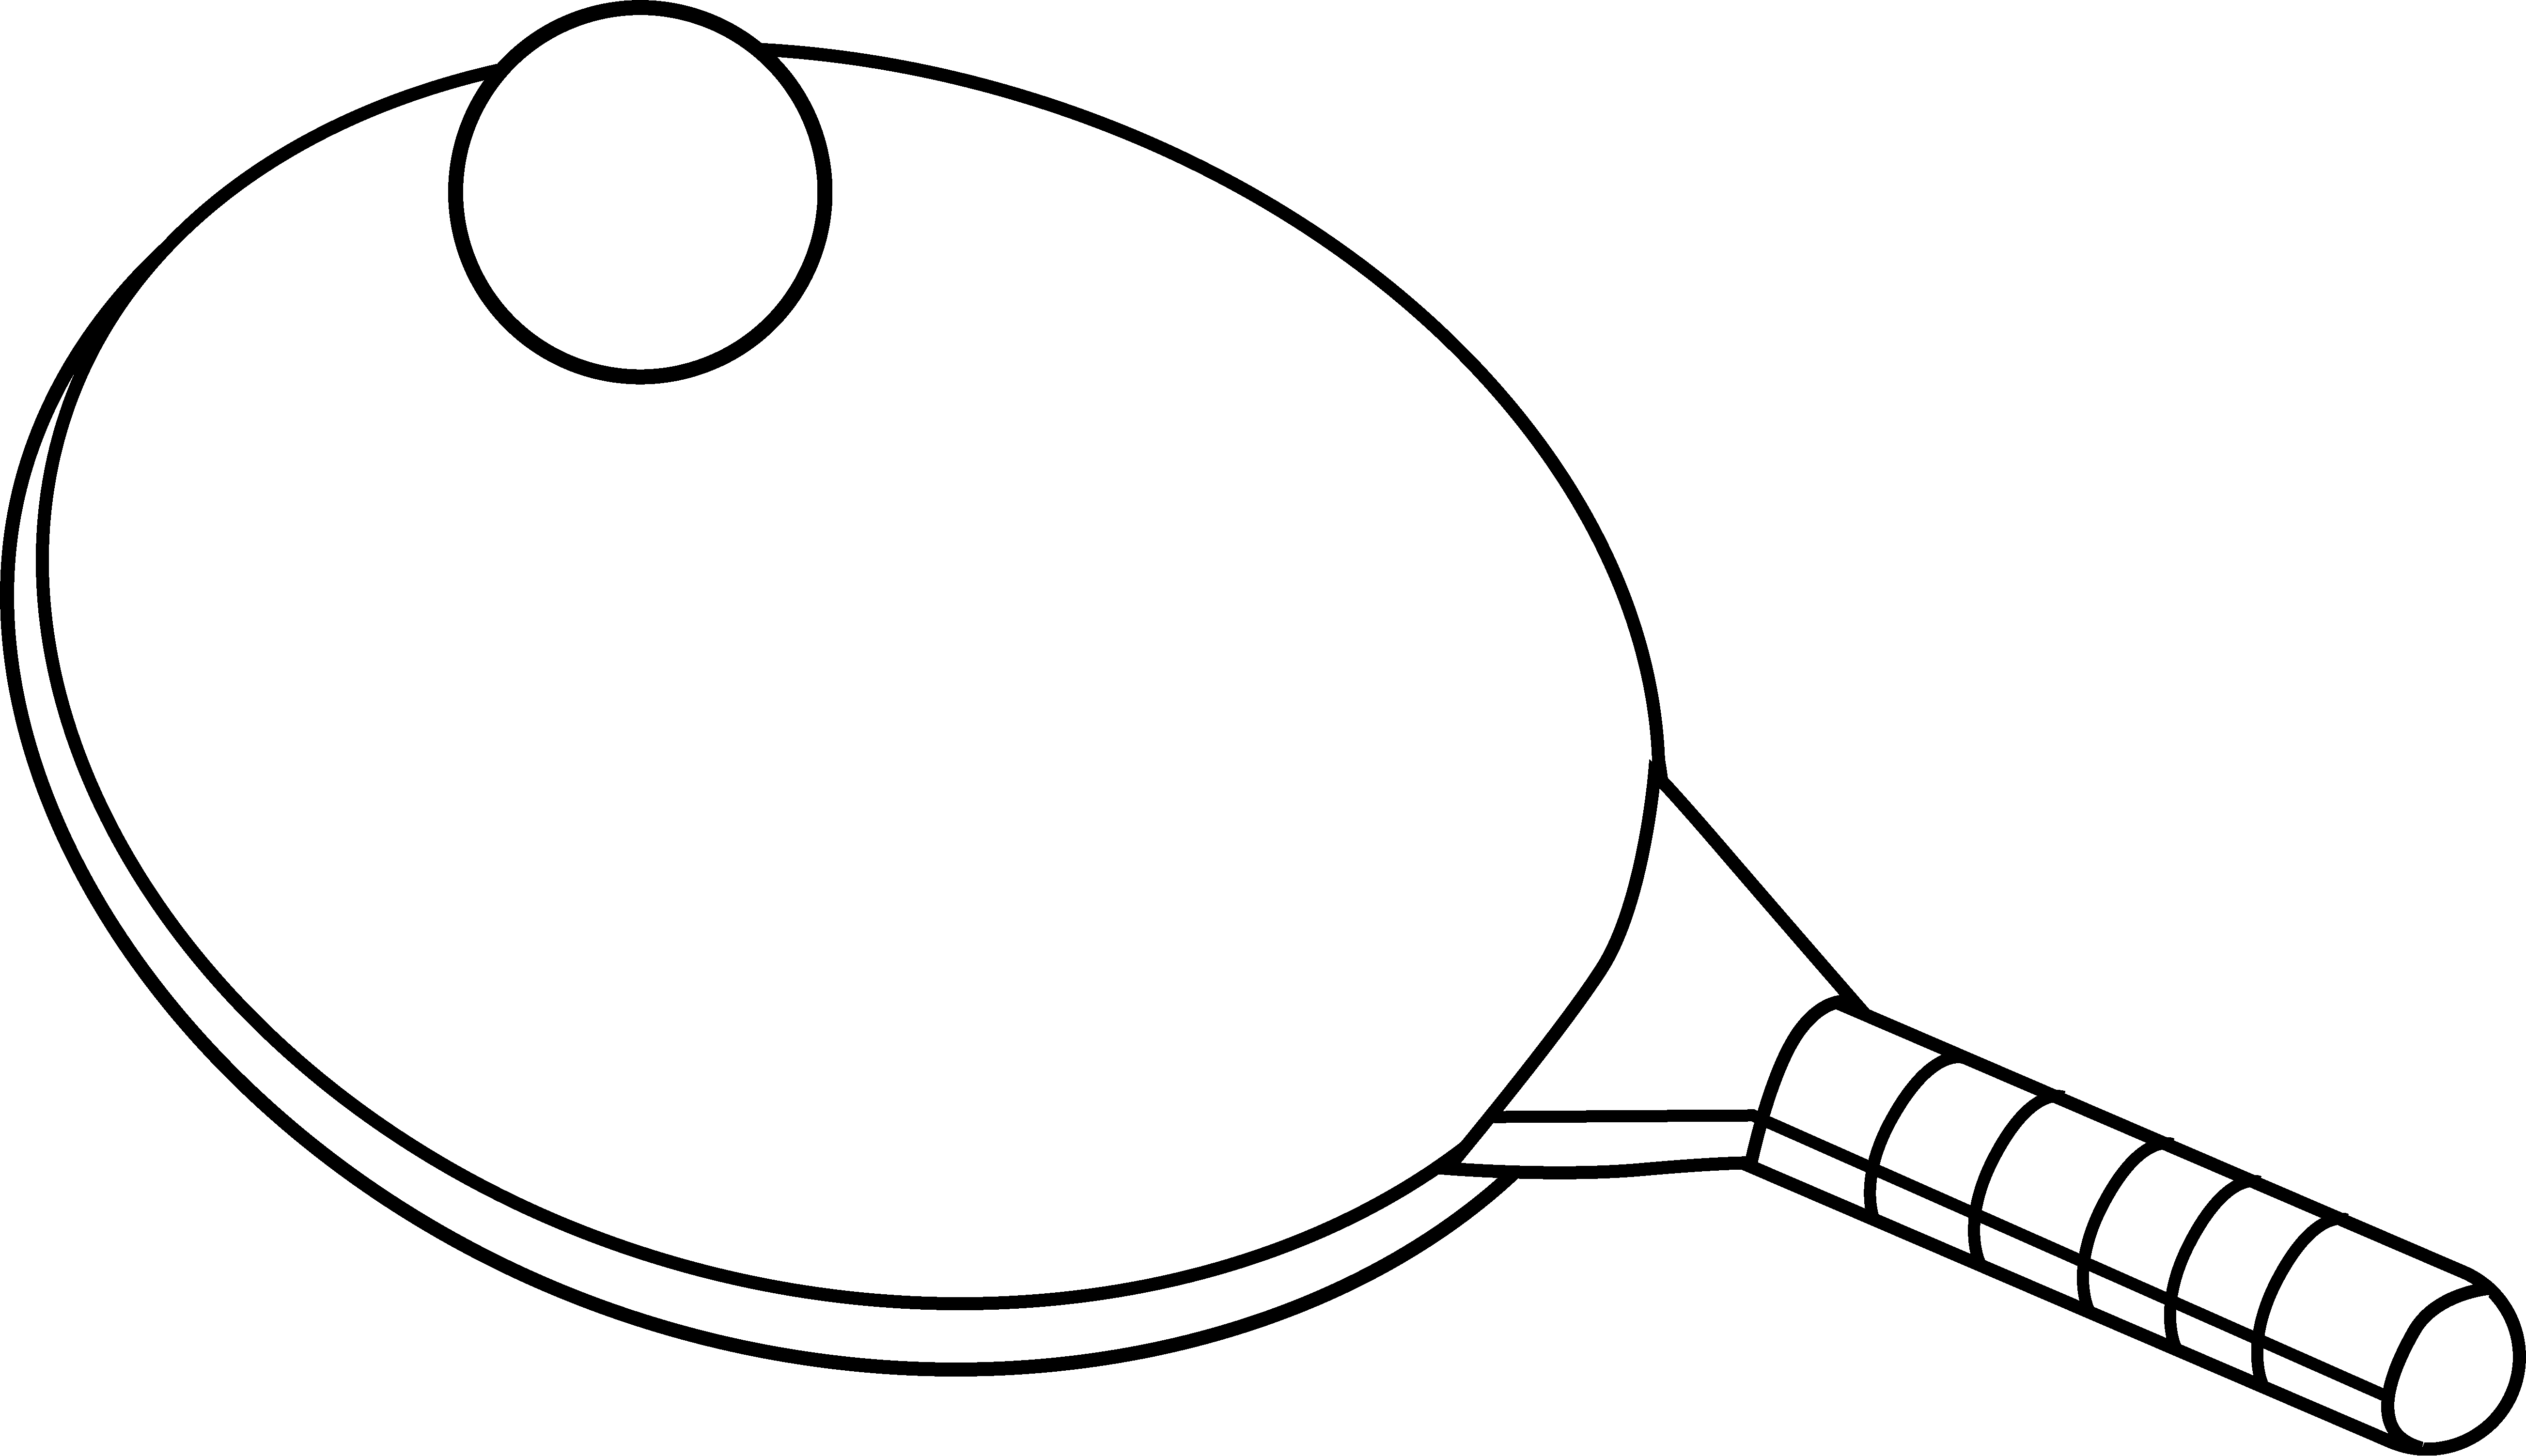 Coloring clipart table. Ping pong clip art